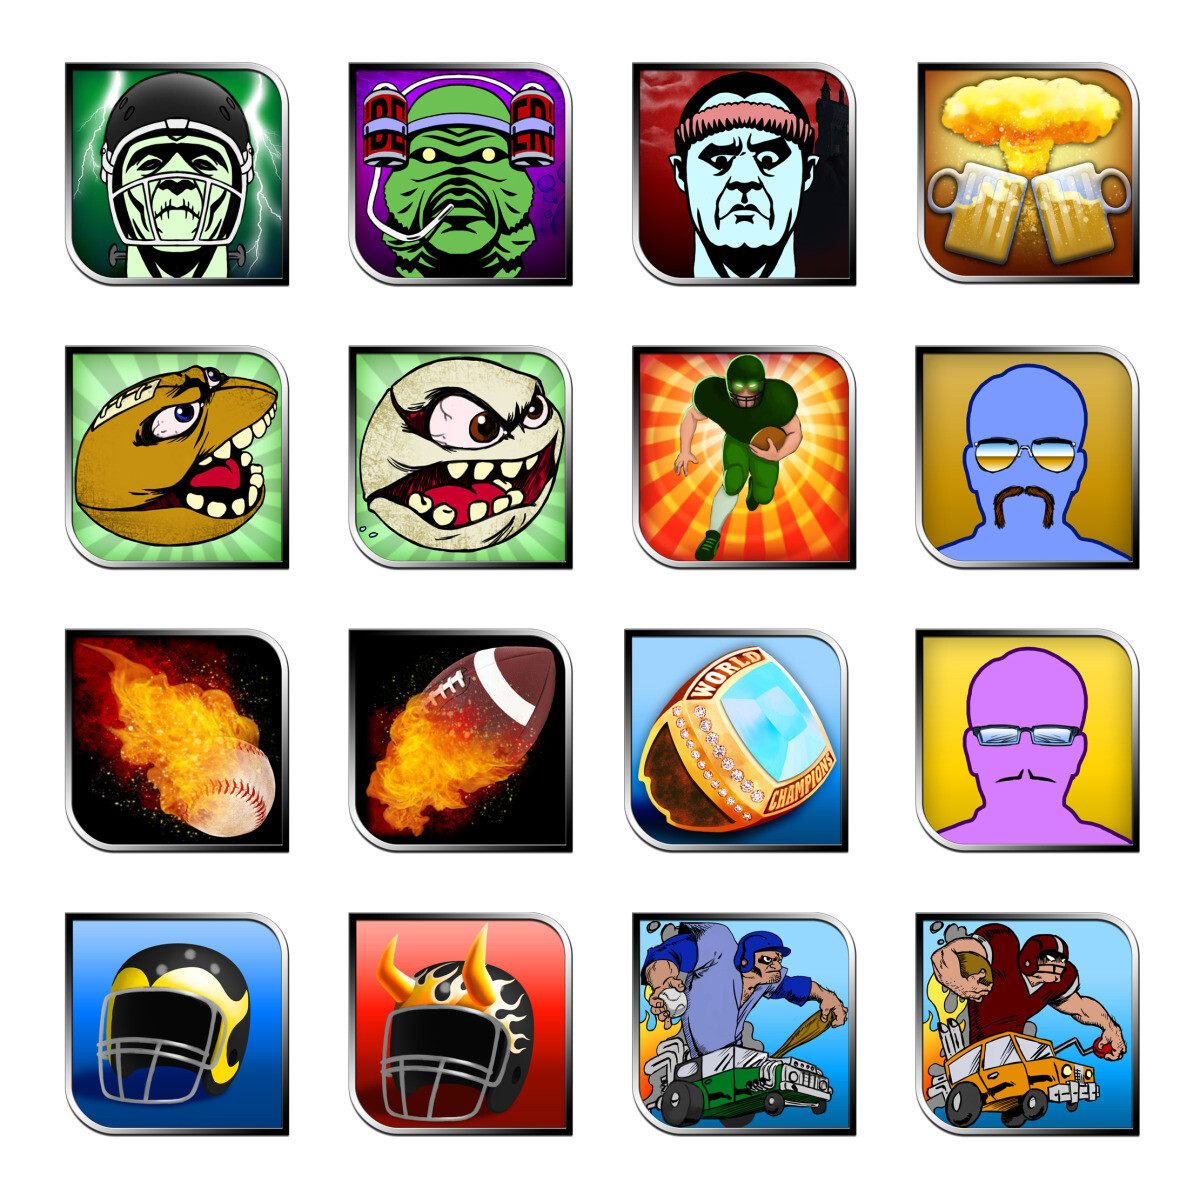 Player icons